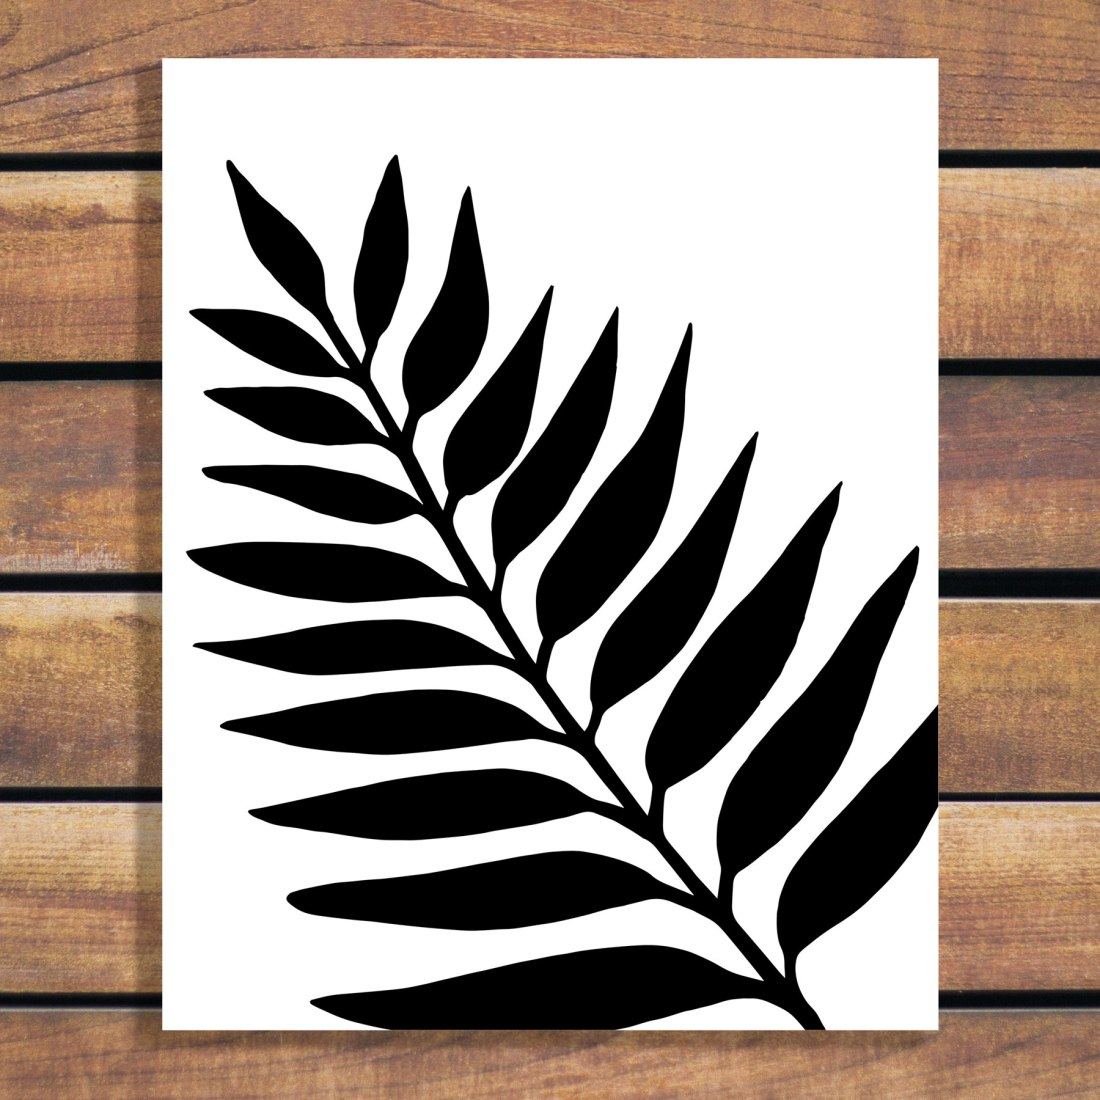 One Leaf Illustration by Brina Schenk - simple and modern artwork to customize with colour and size.